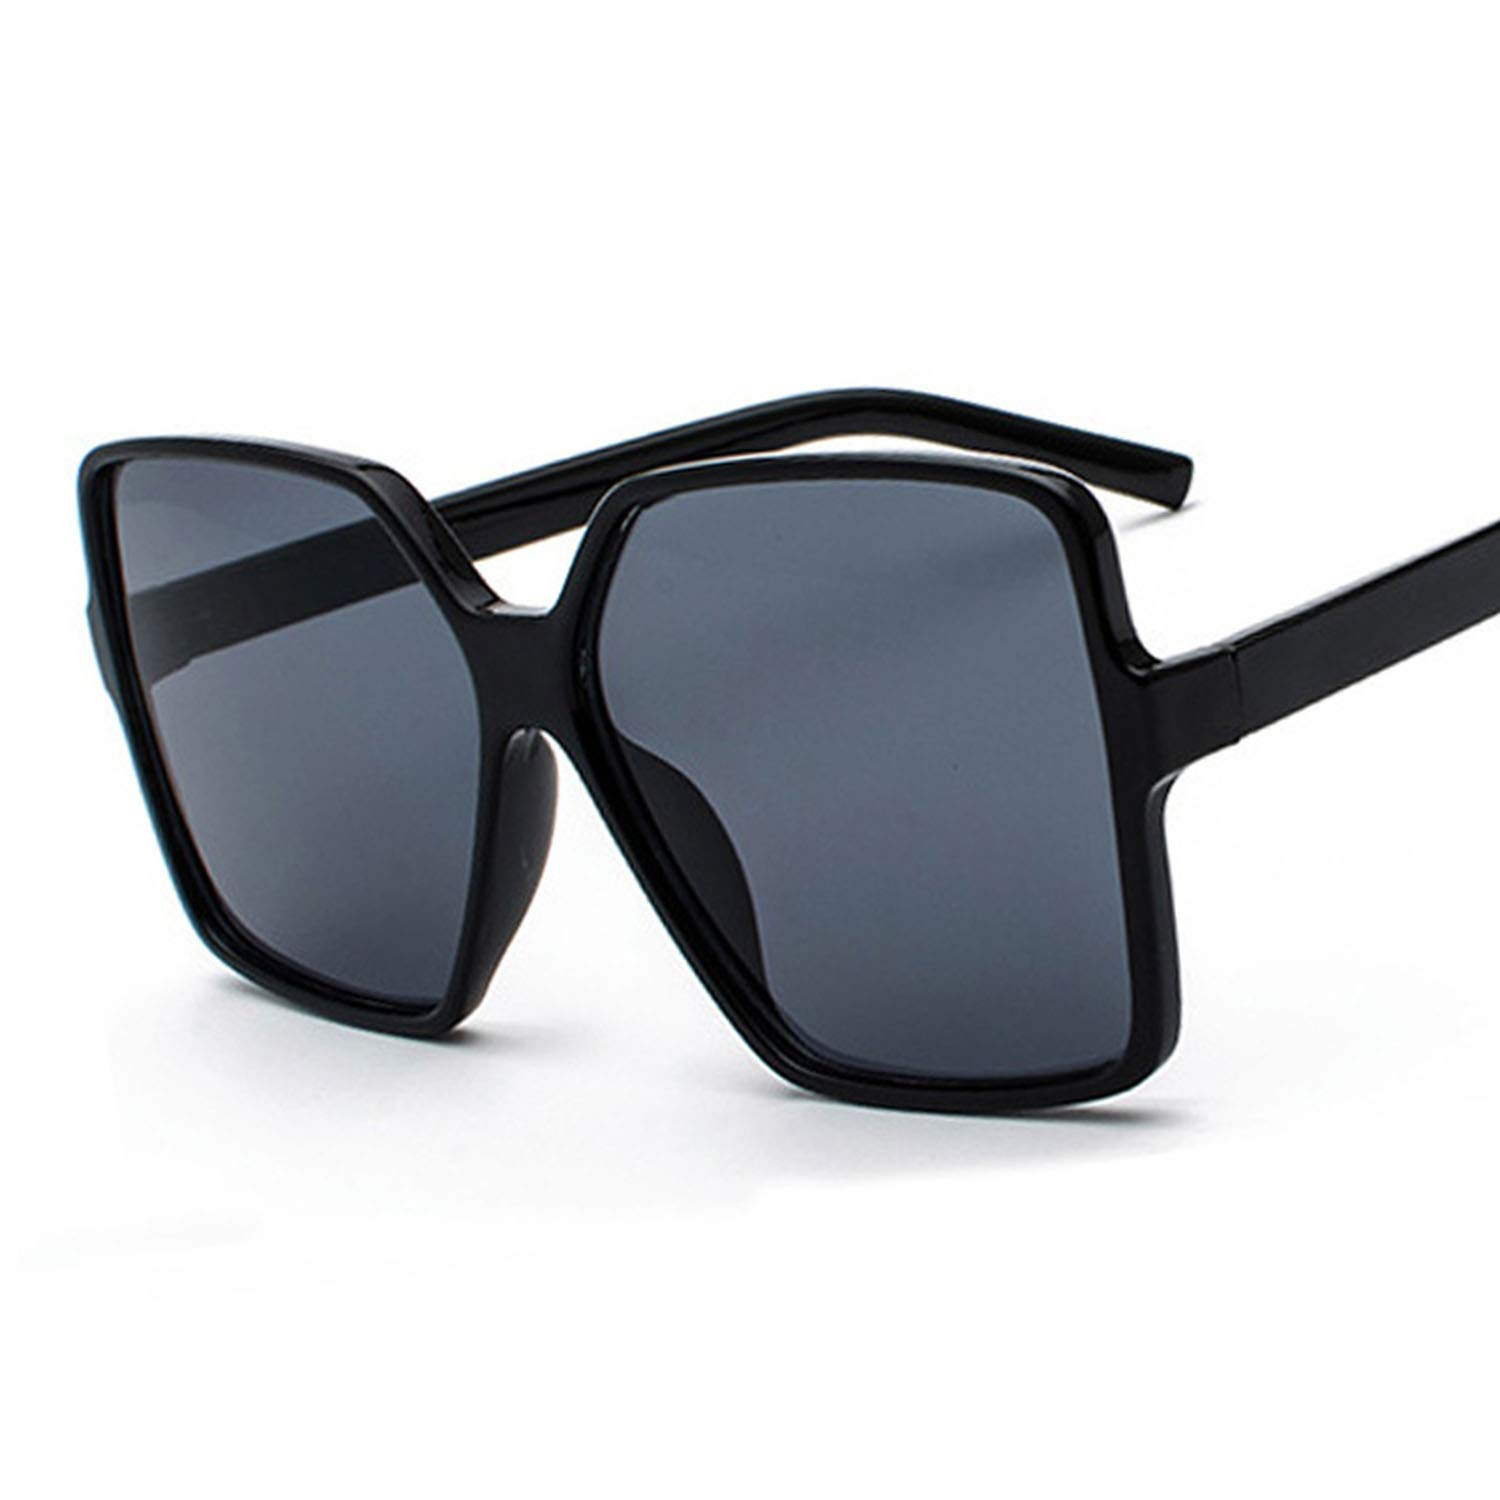 Amazon.com: Oversized Square Sunglasses Women Double Colors ...